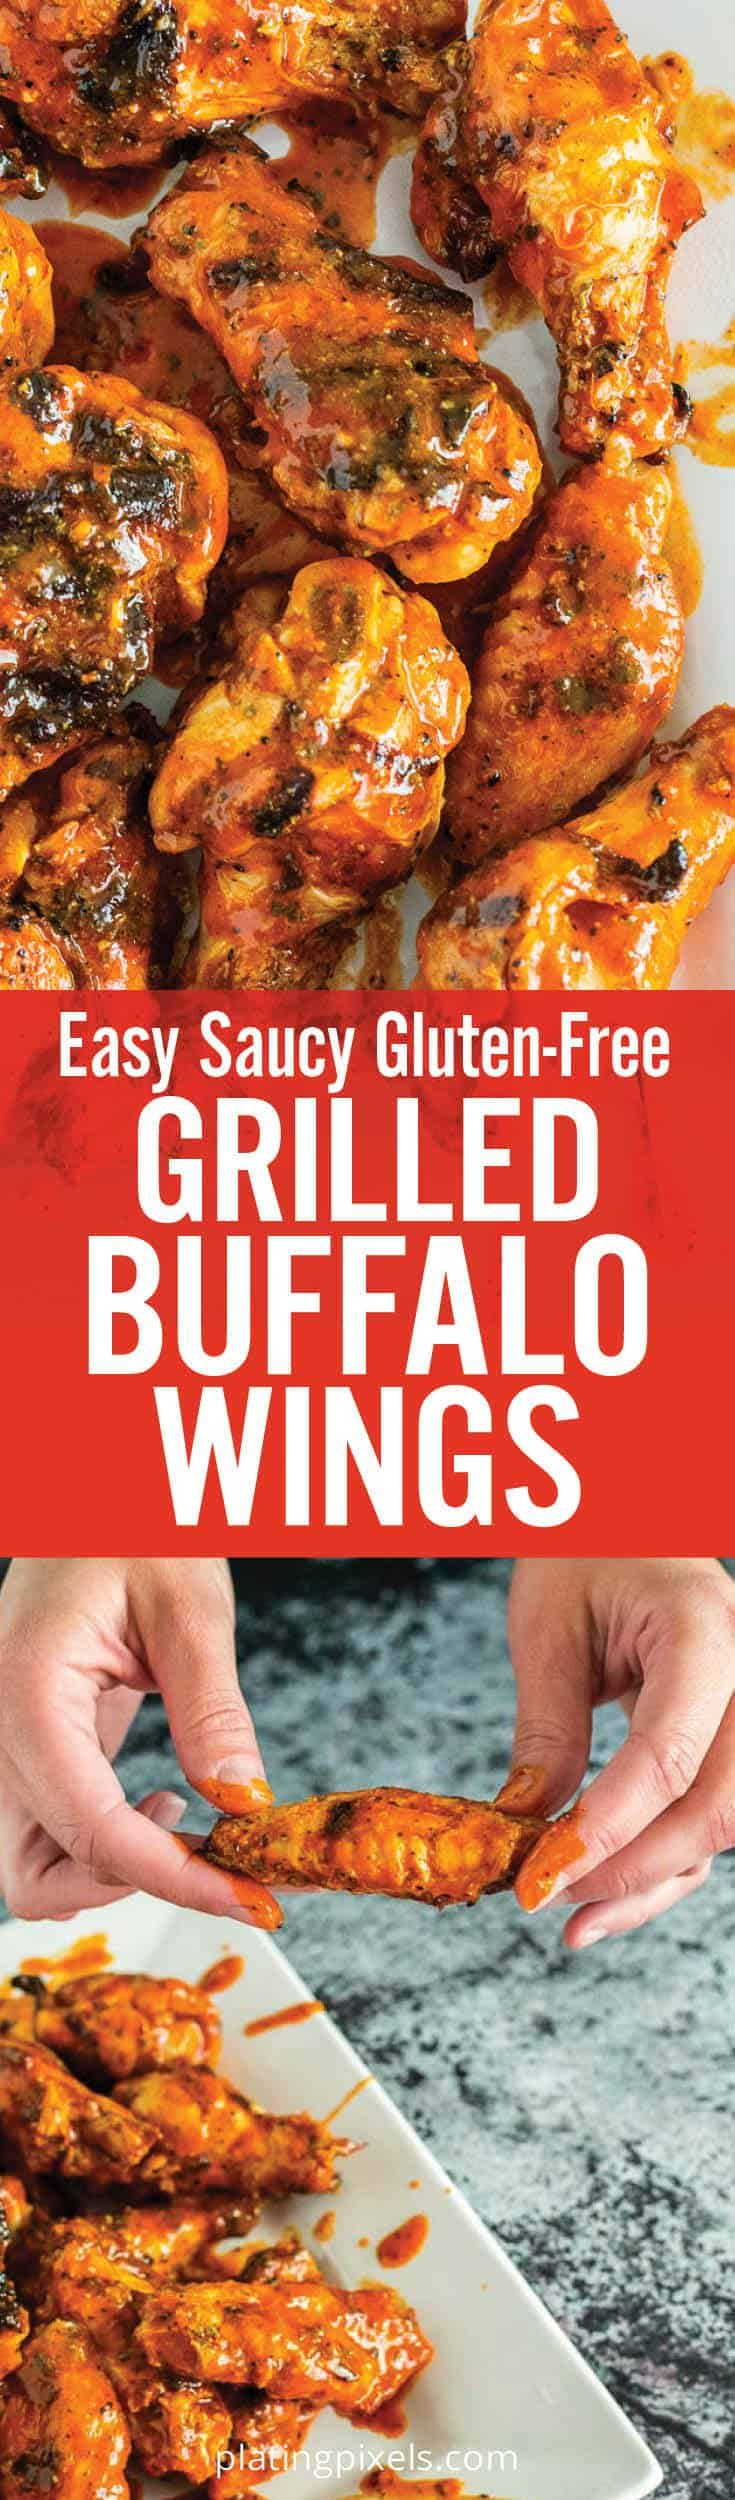 Easy Saucy Grilled Buffalo Wings Are A Unique Summer Bbq Recipe Tender Buttermilk Marinated Chicken Party Wings Coated Recipes Bbq Recipes Summer Bbq Recipes